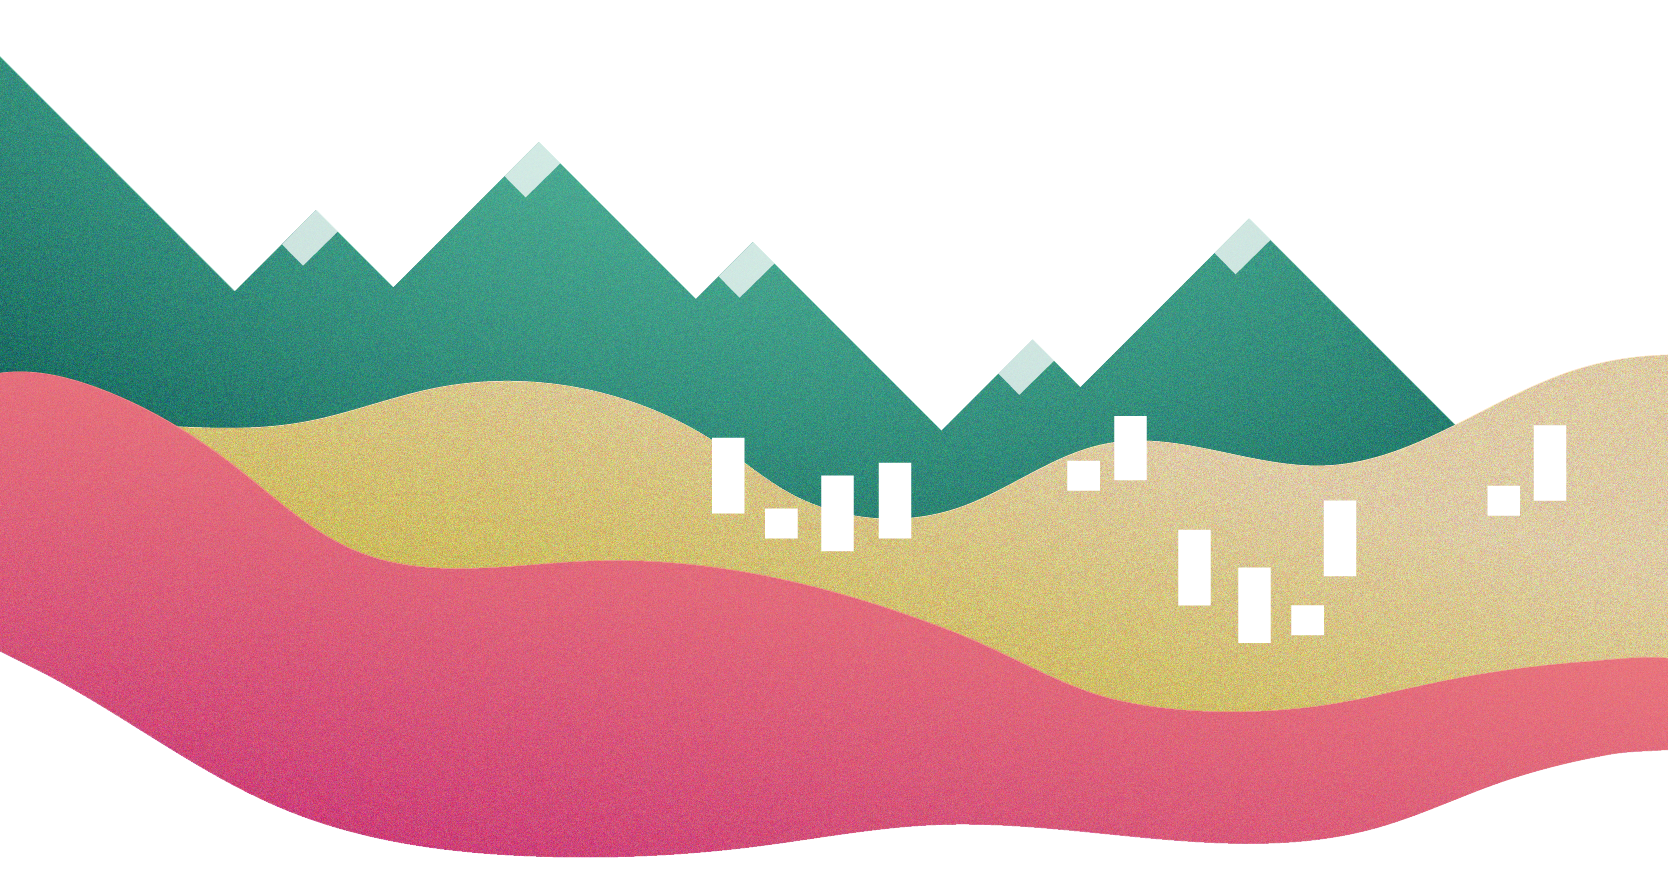 Rosalind chang ucla dma. Hills clipart two mountain